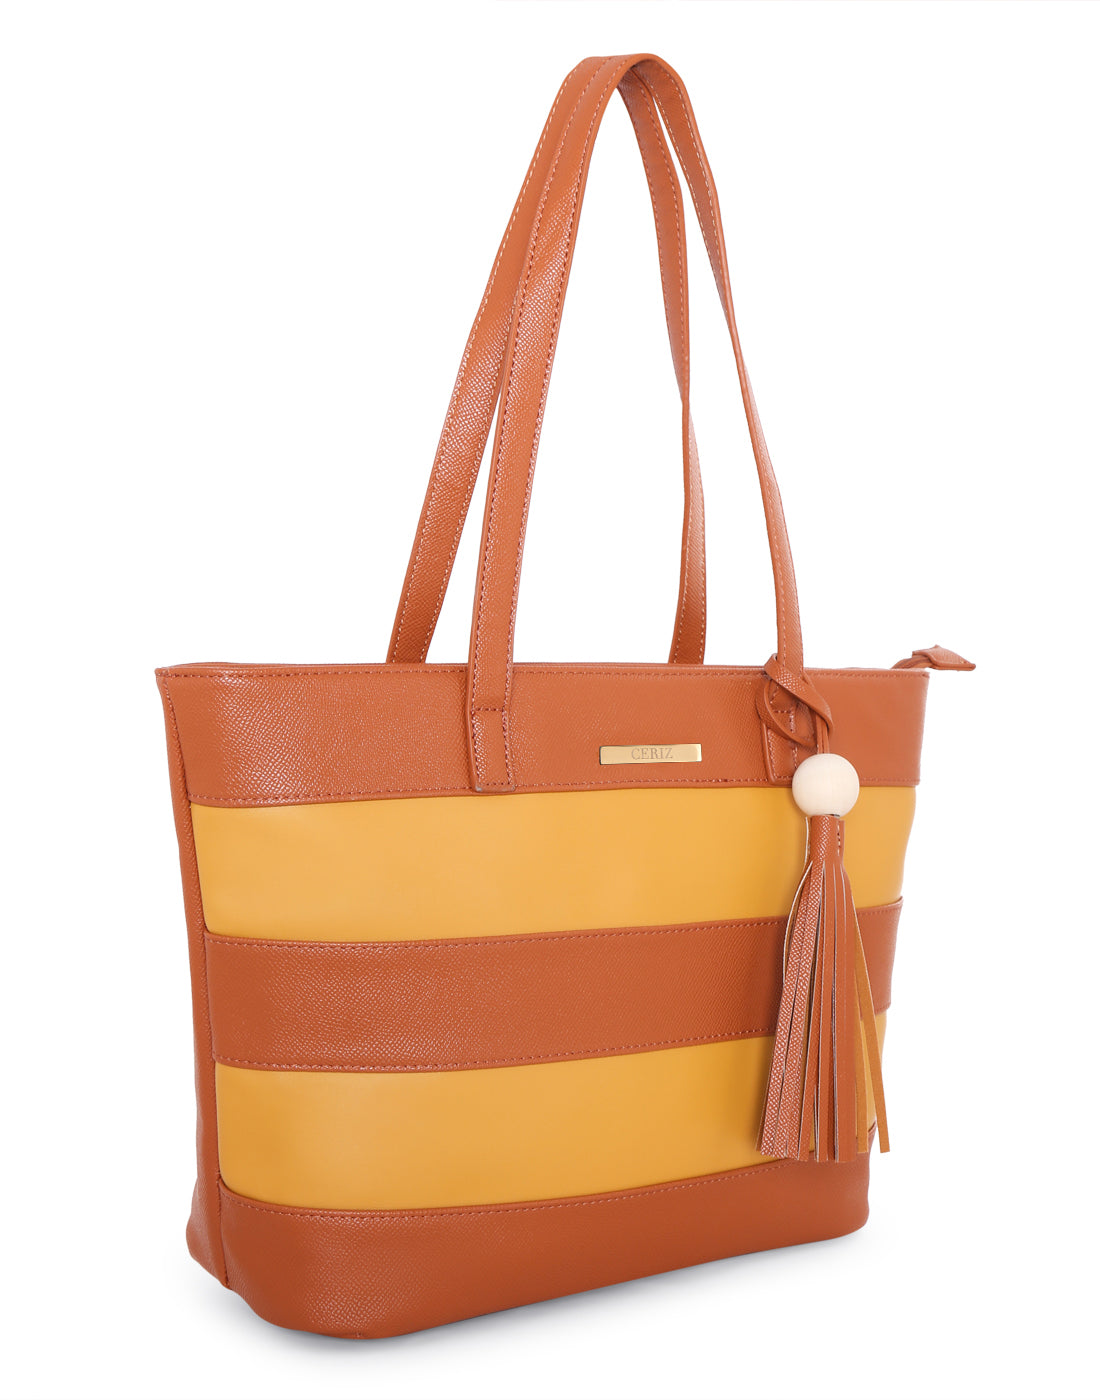 Bianca Striped Tan Tote Bag